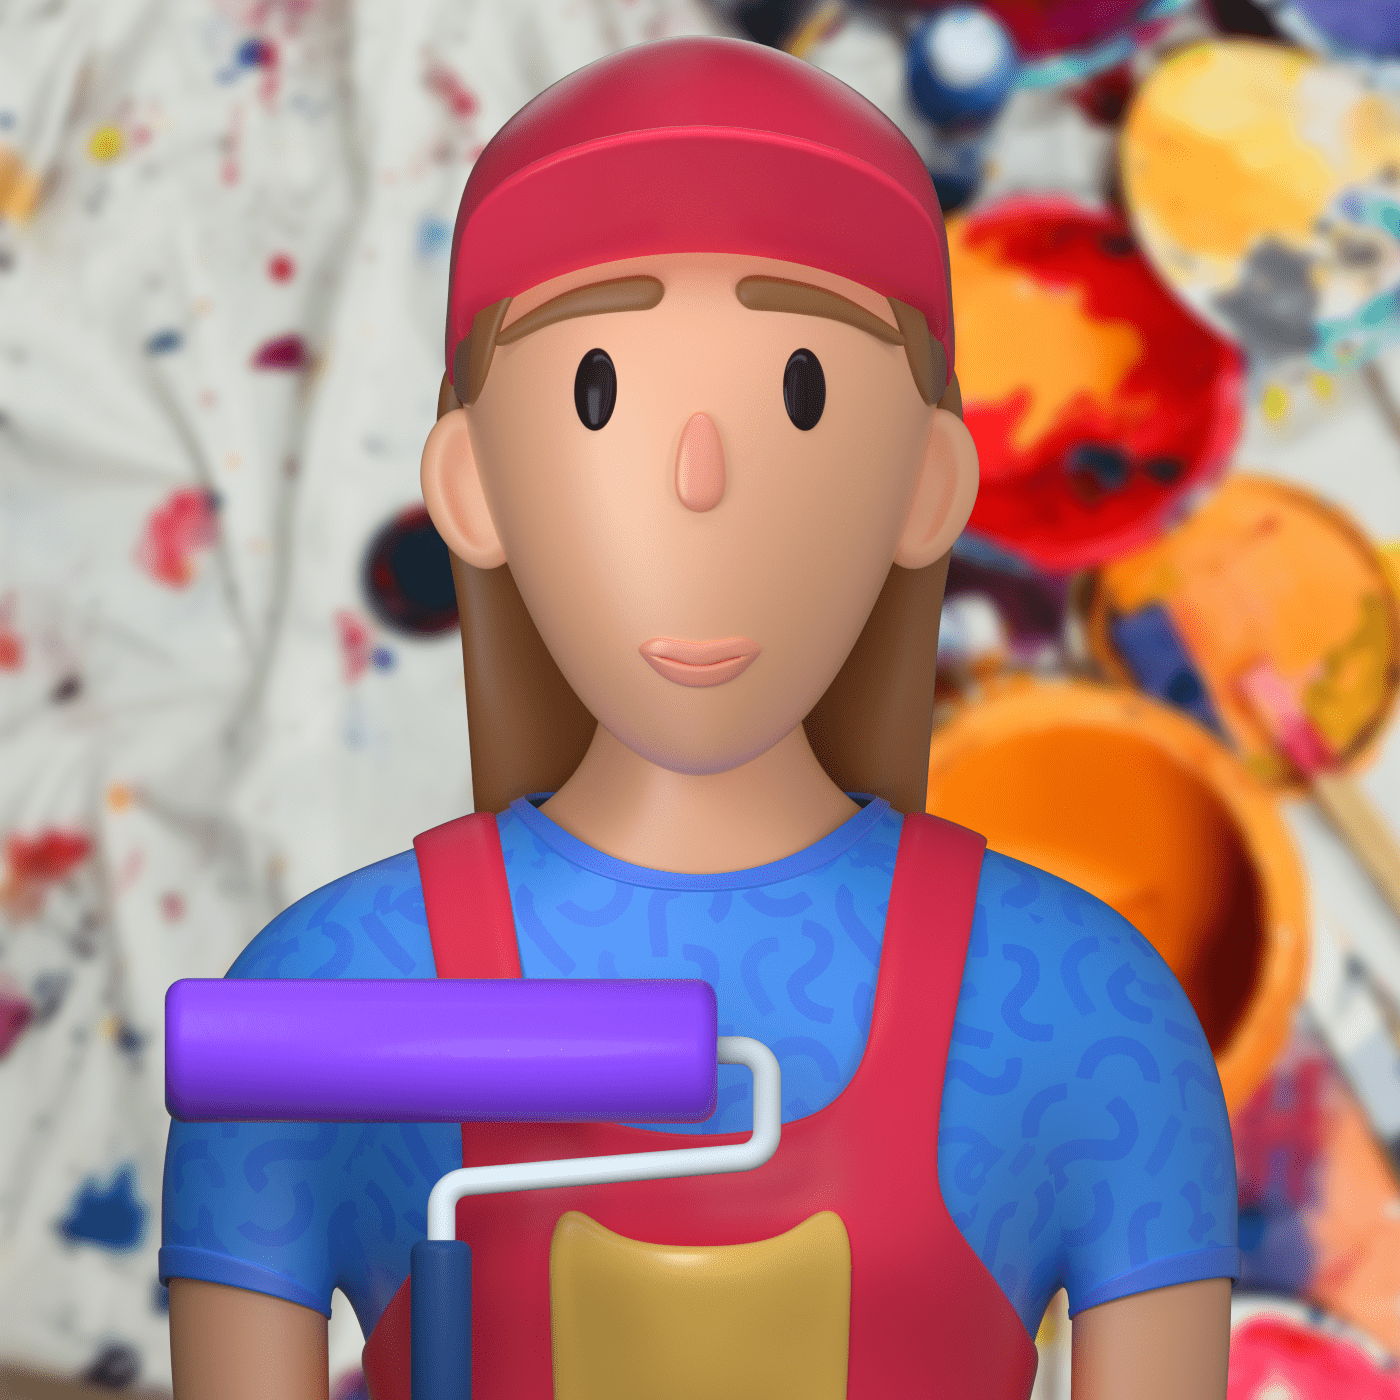 a painter character in 3d design style